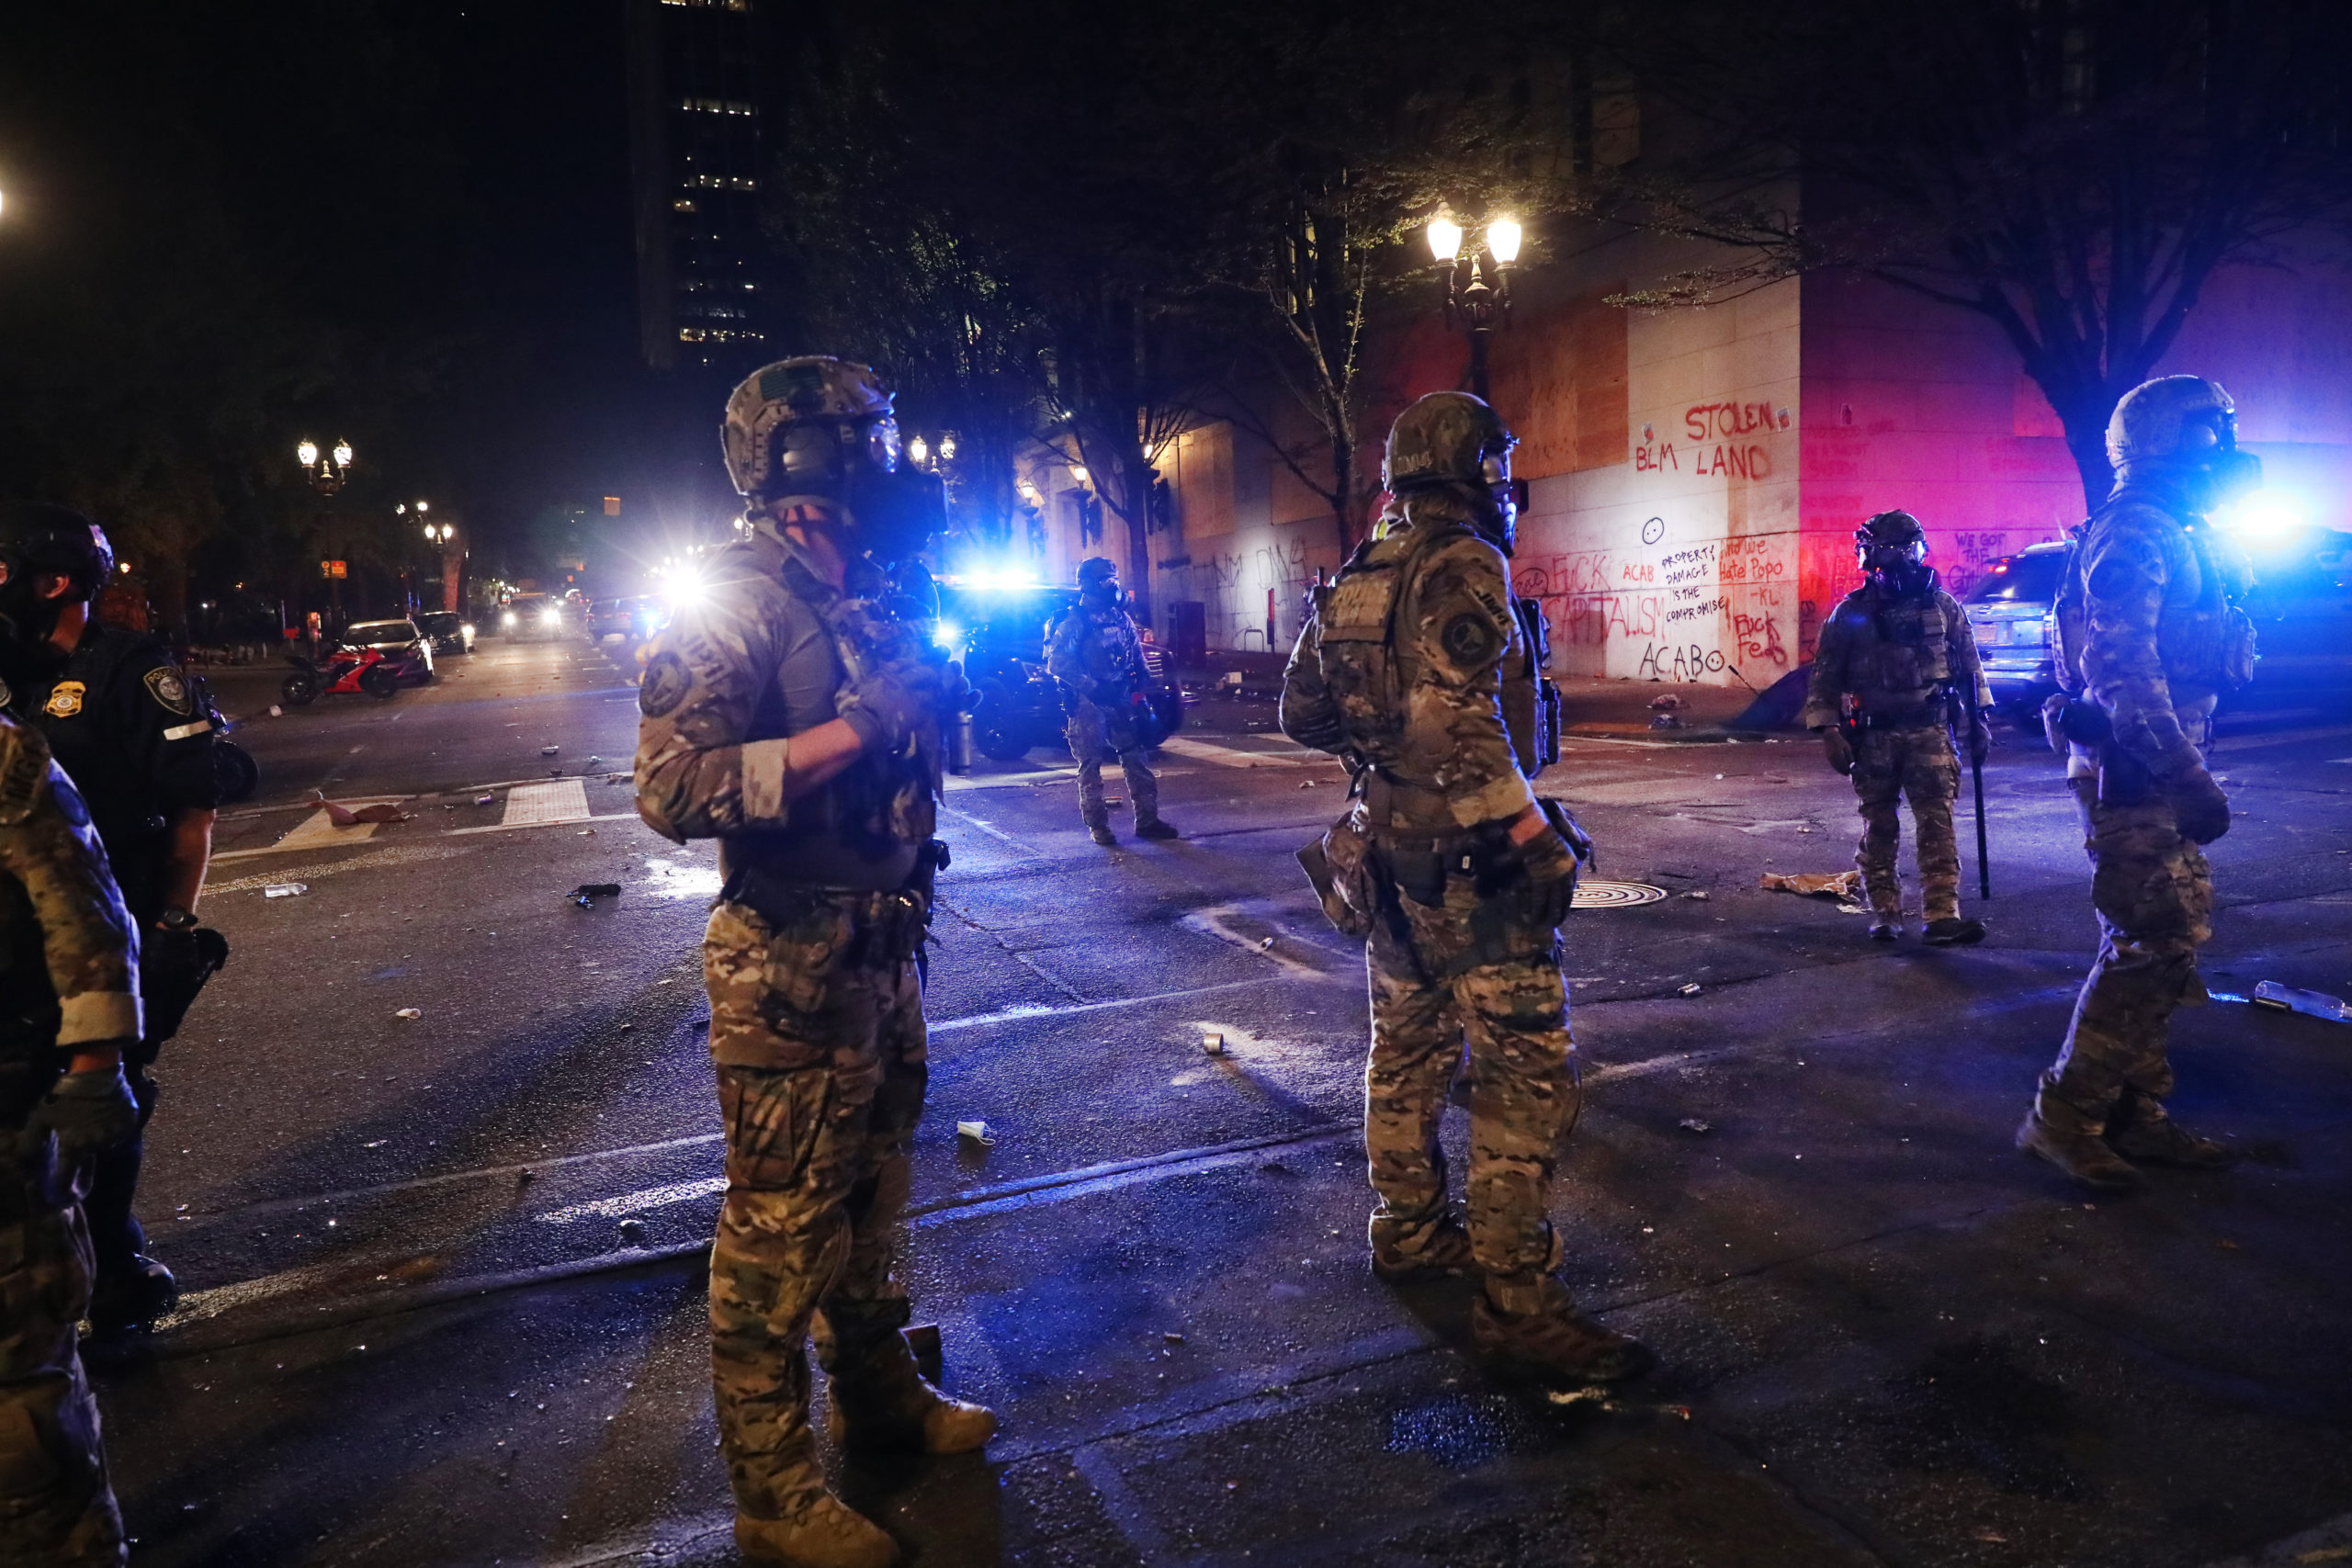 Federal Police clash with protesters in front of the Mark O. Hatfield federal courthouse in downtown Portland as the city experiences another night of unrest on July 25, 2020 in Portland, Oregon. (Photo by Spencer Platt/Getty Images)